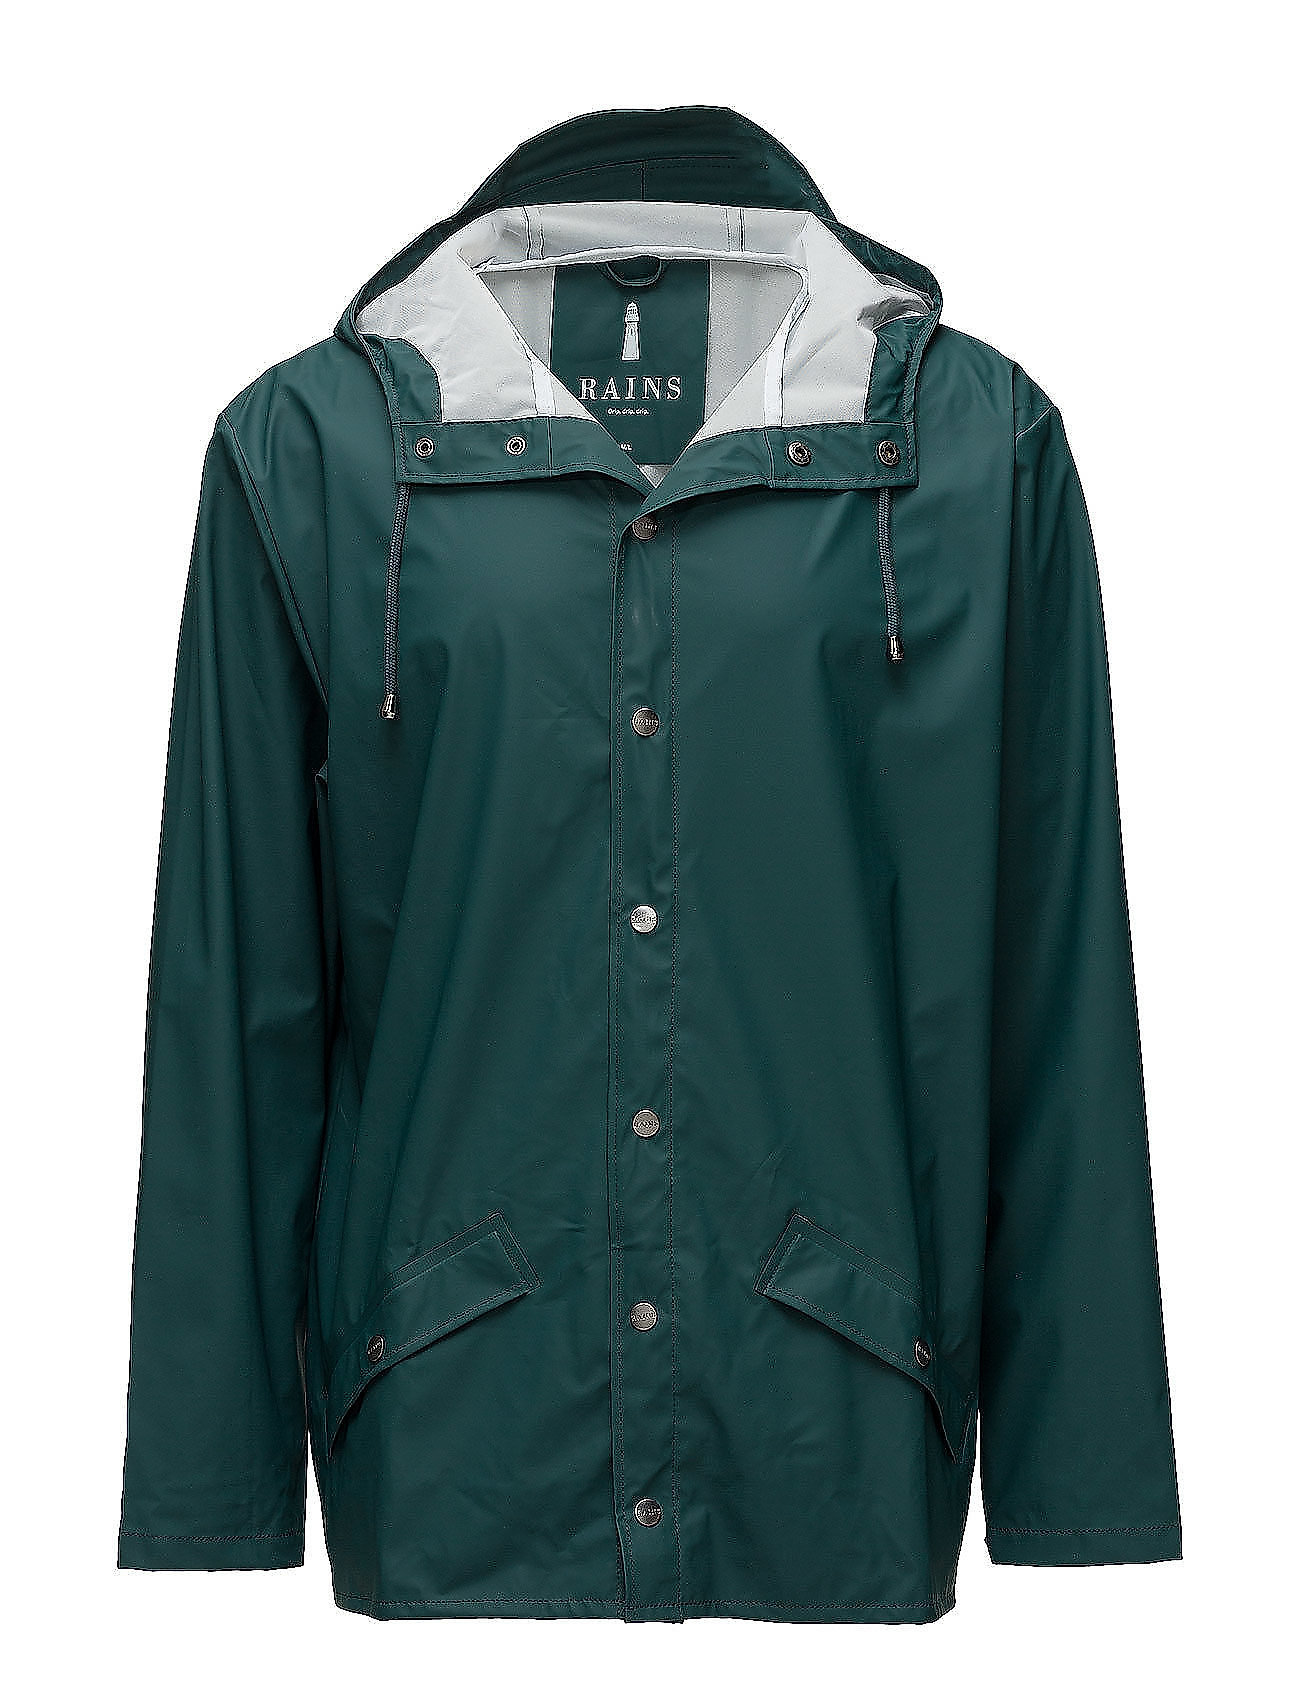 Rains Jacket - 40 DARK TEAL